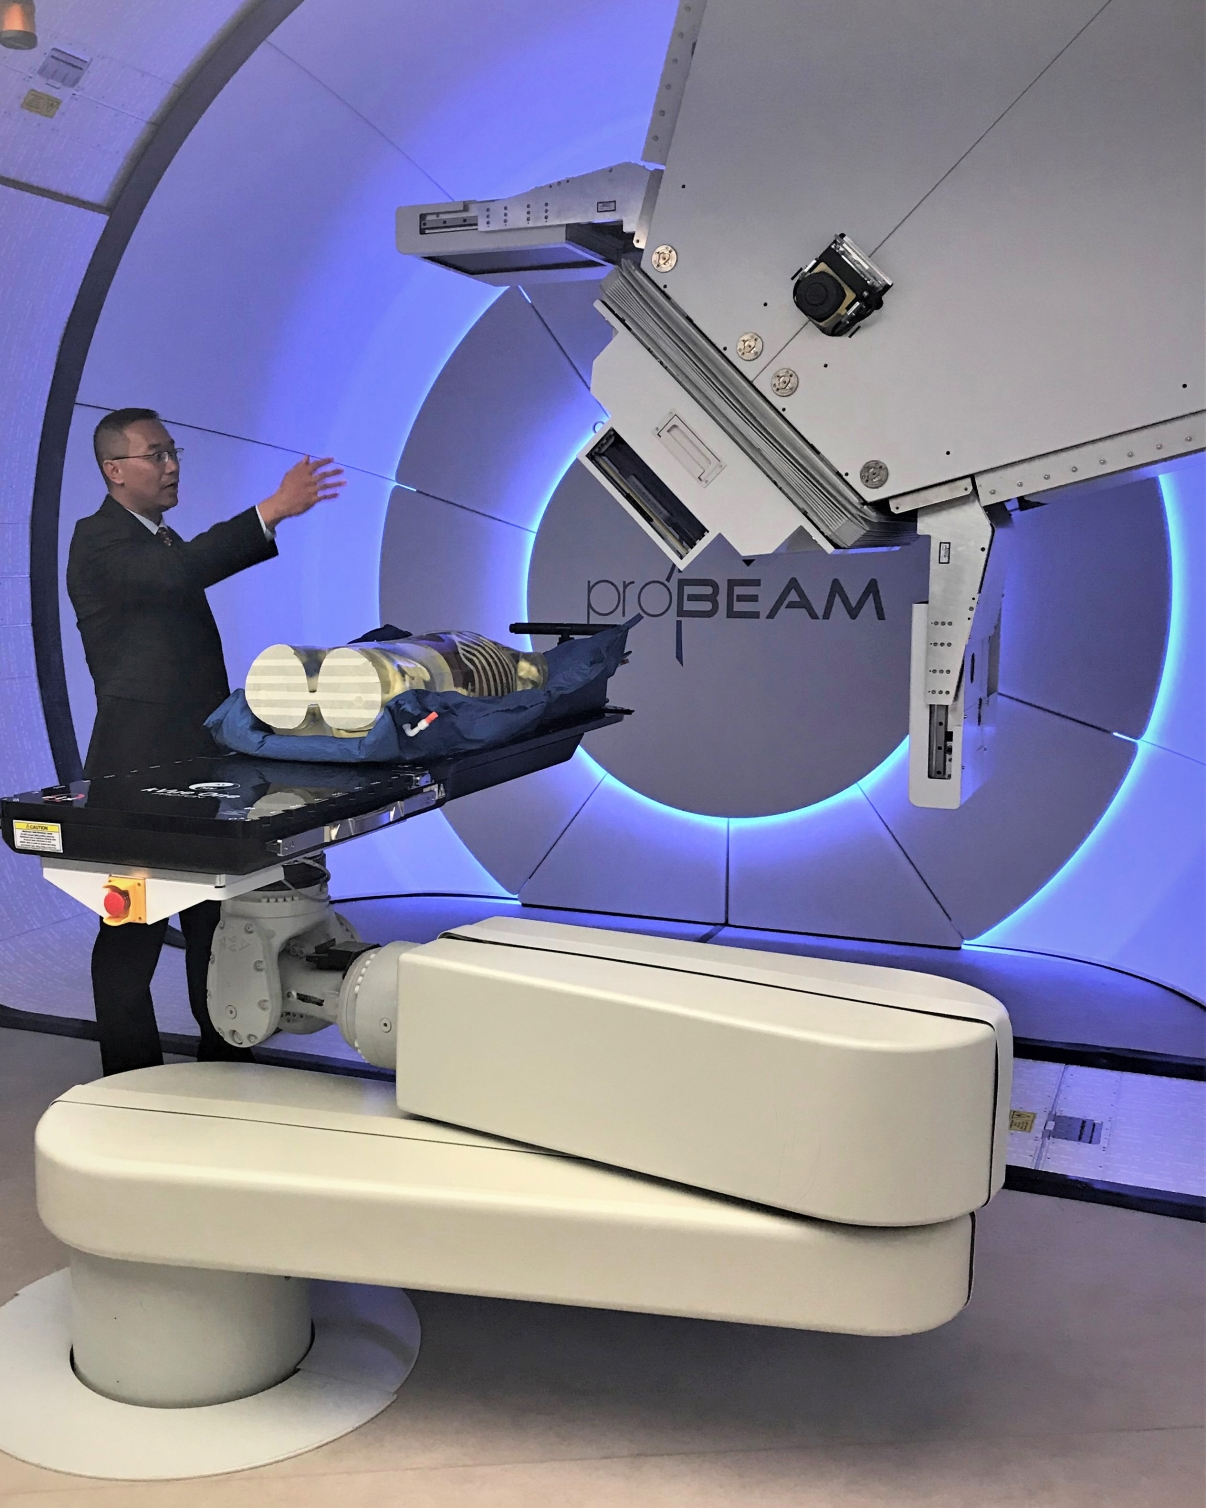 New York City's First Proton Therapy Center Opens in East Harlem